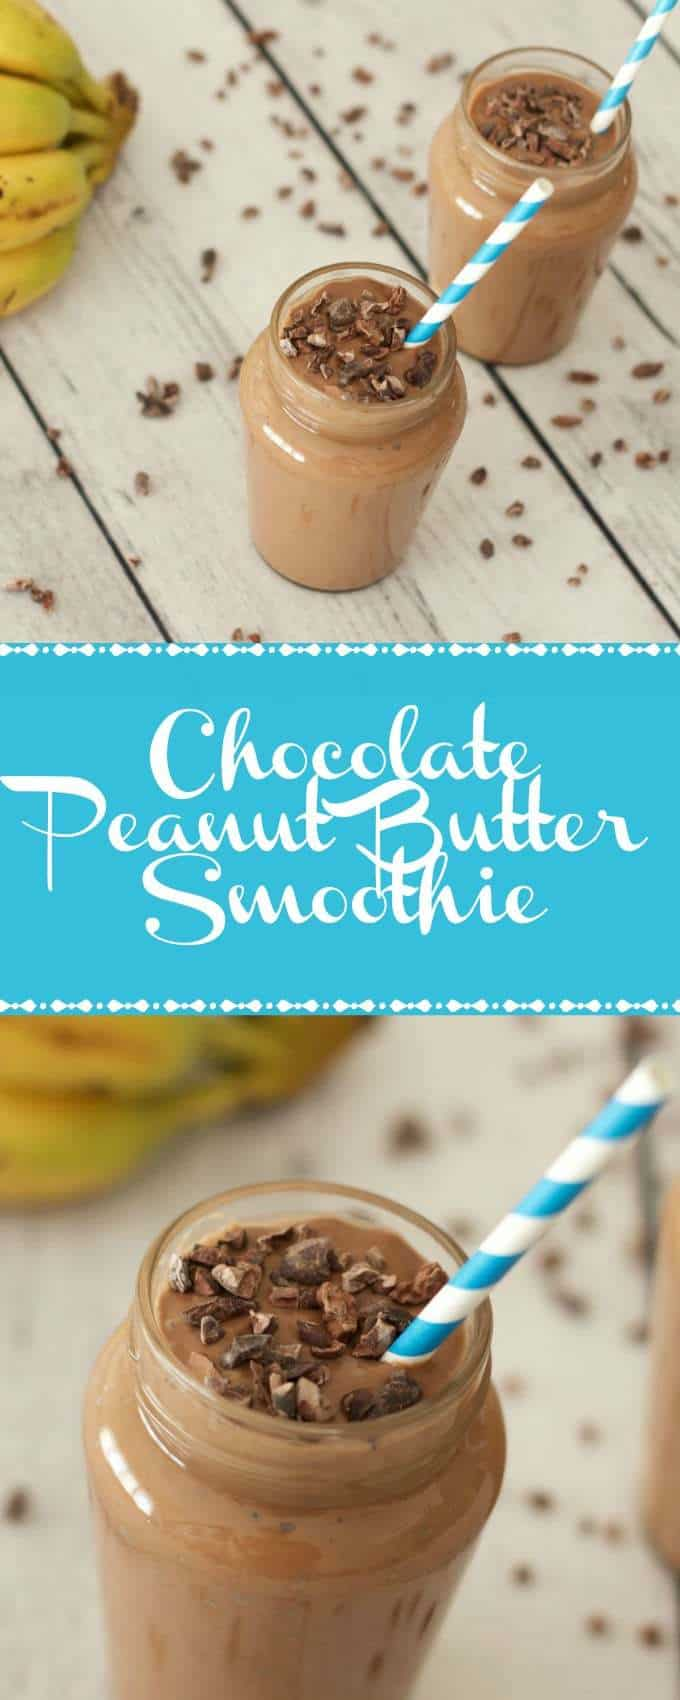 Chocolate Peanut Butter Smoothie (Vegan and Gluten-Free). Perfect for breakfast! #vegan #dairy-free #gluten-free #smoothies #lovingitvegan